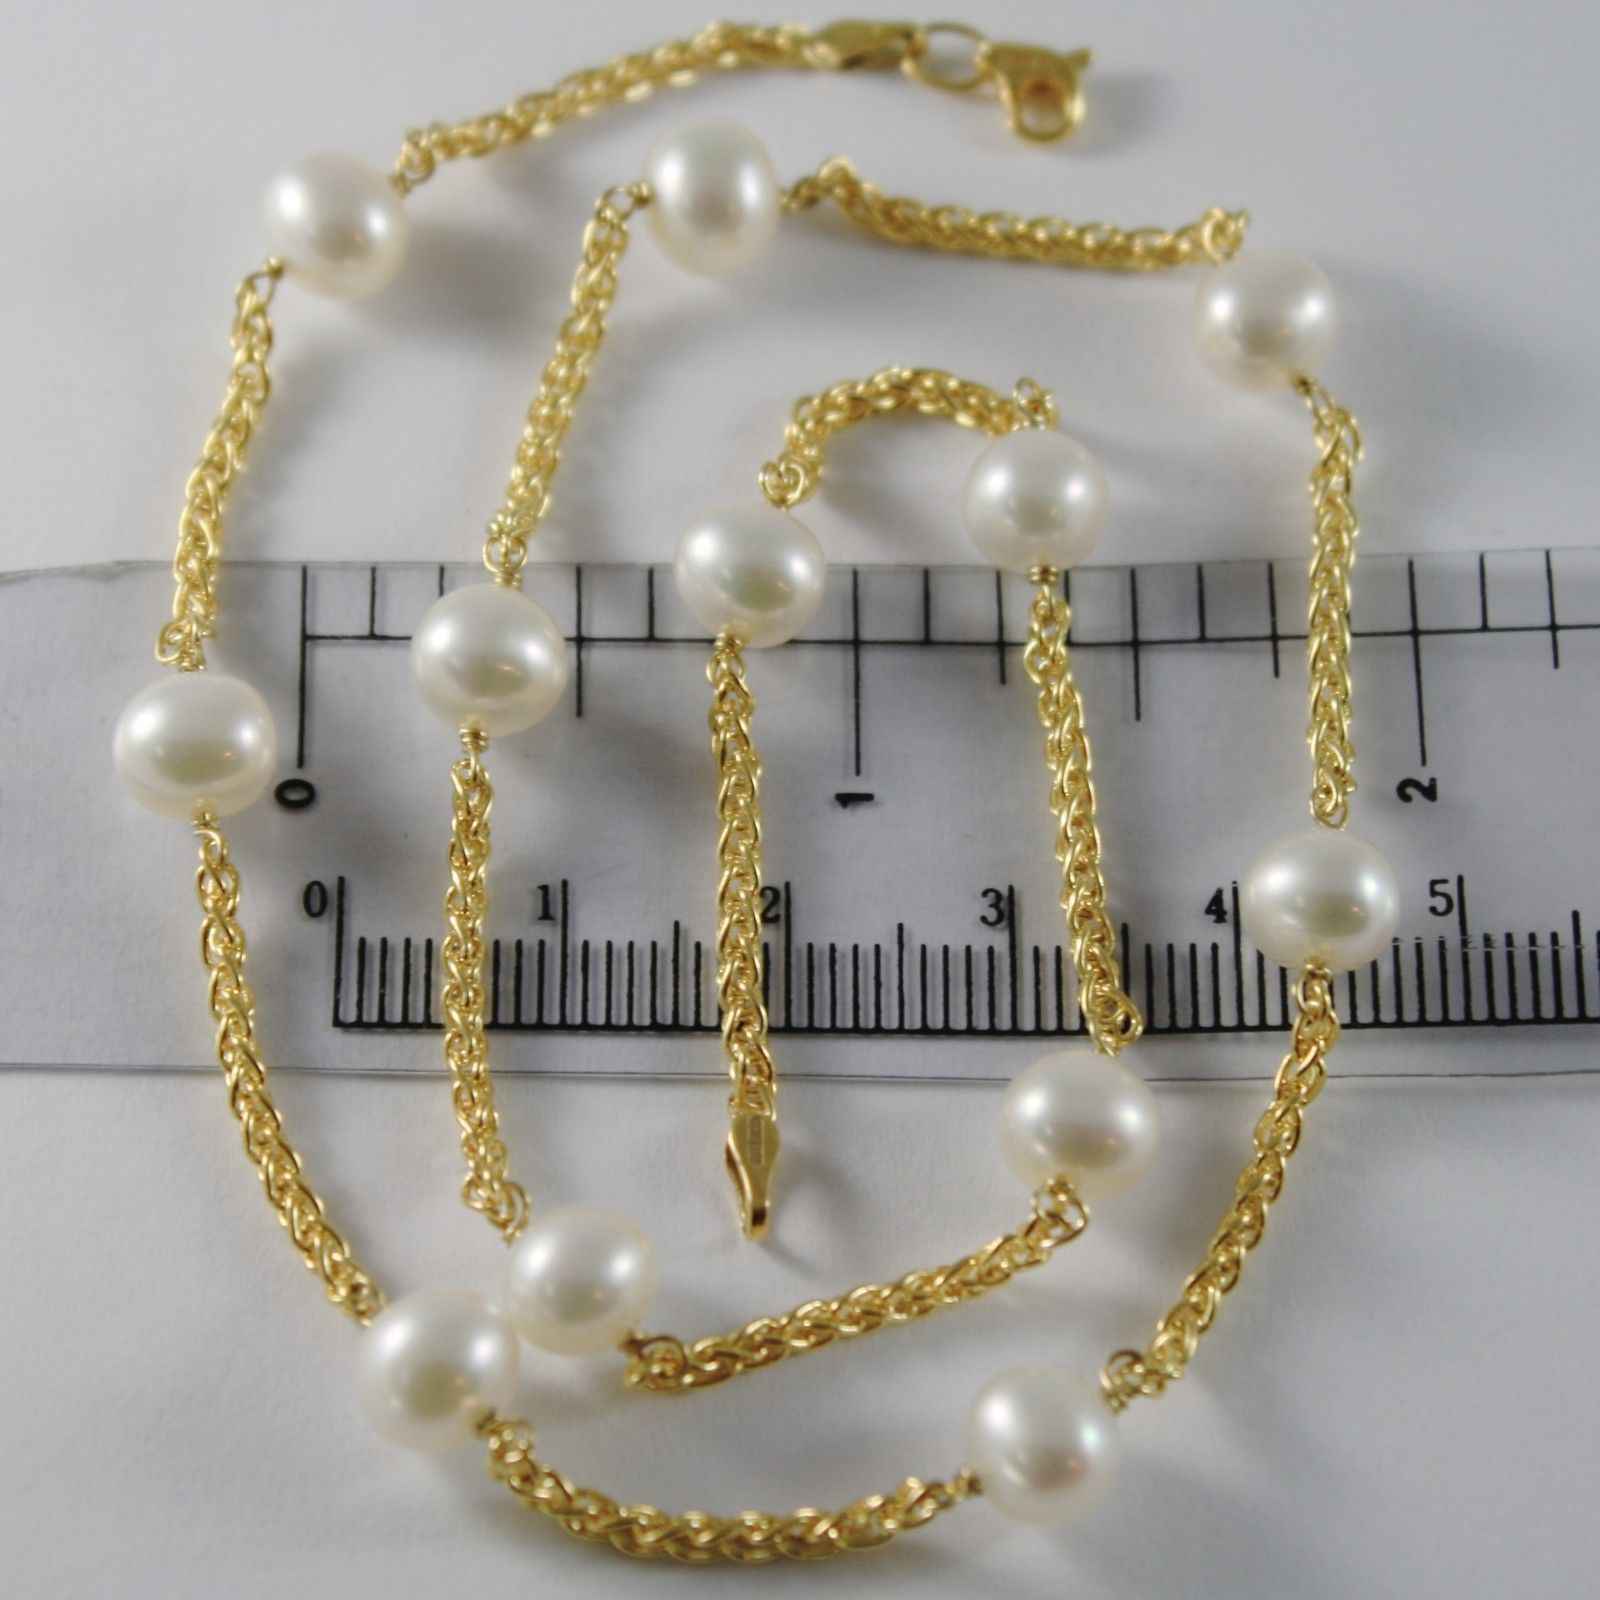 9K YELLOW GOLD NECKLACE WITH WHITE PEARLS 7 MM, 44 CM, 17.3 INCHES MADE IN ITALY